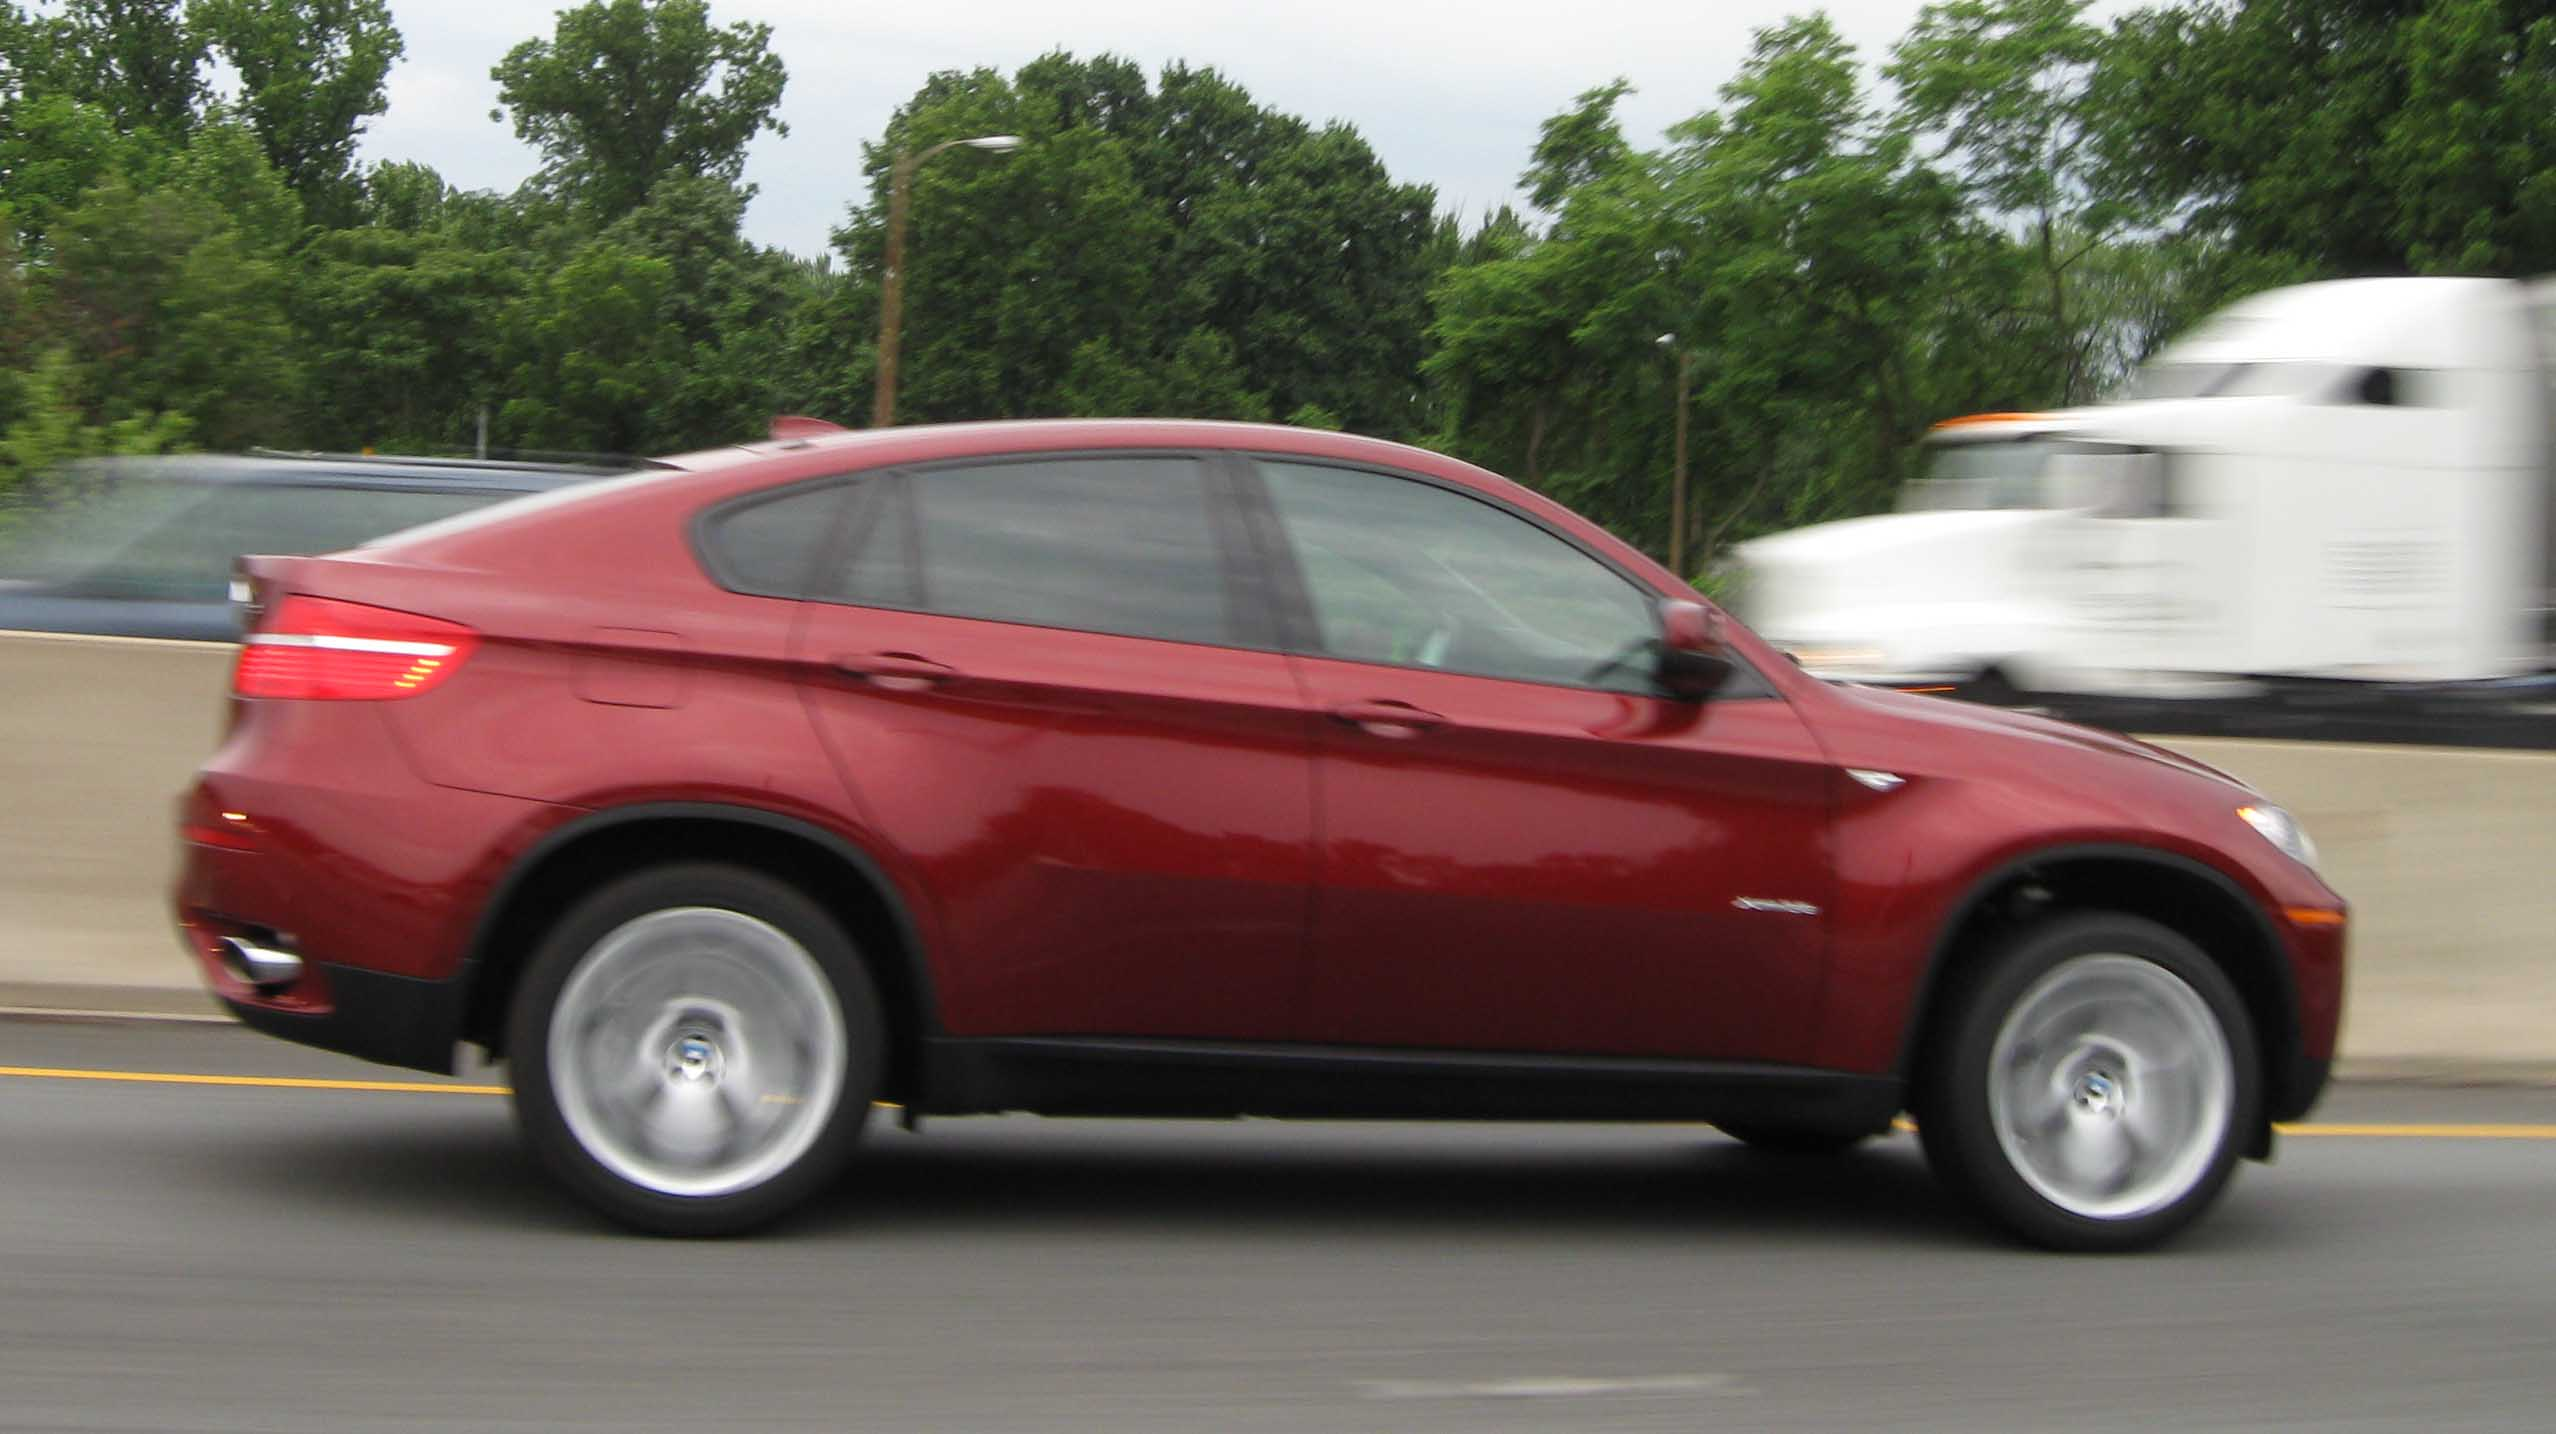 File:2009 BMW X6 side.jpg - Wikimedia Commons